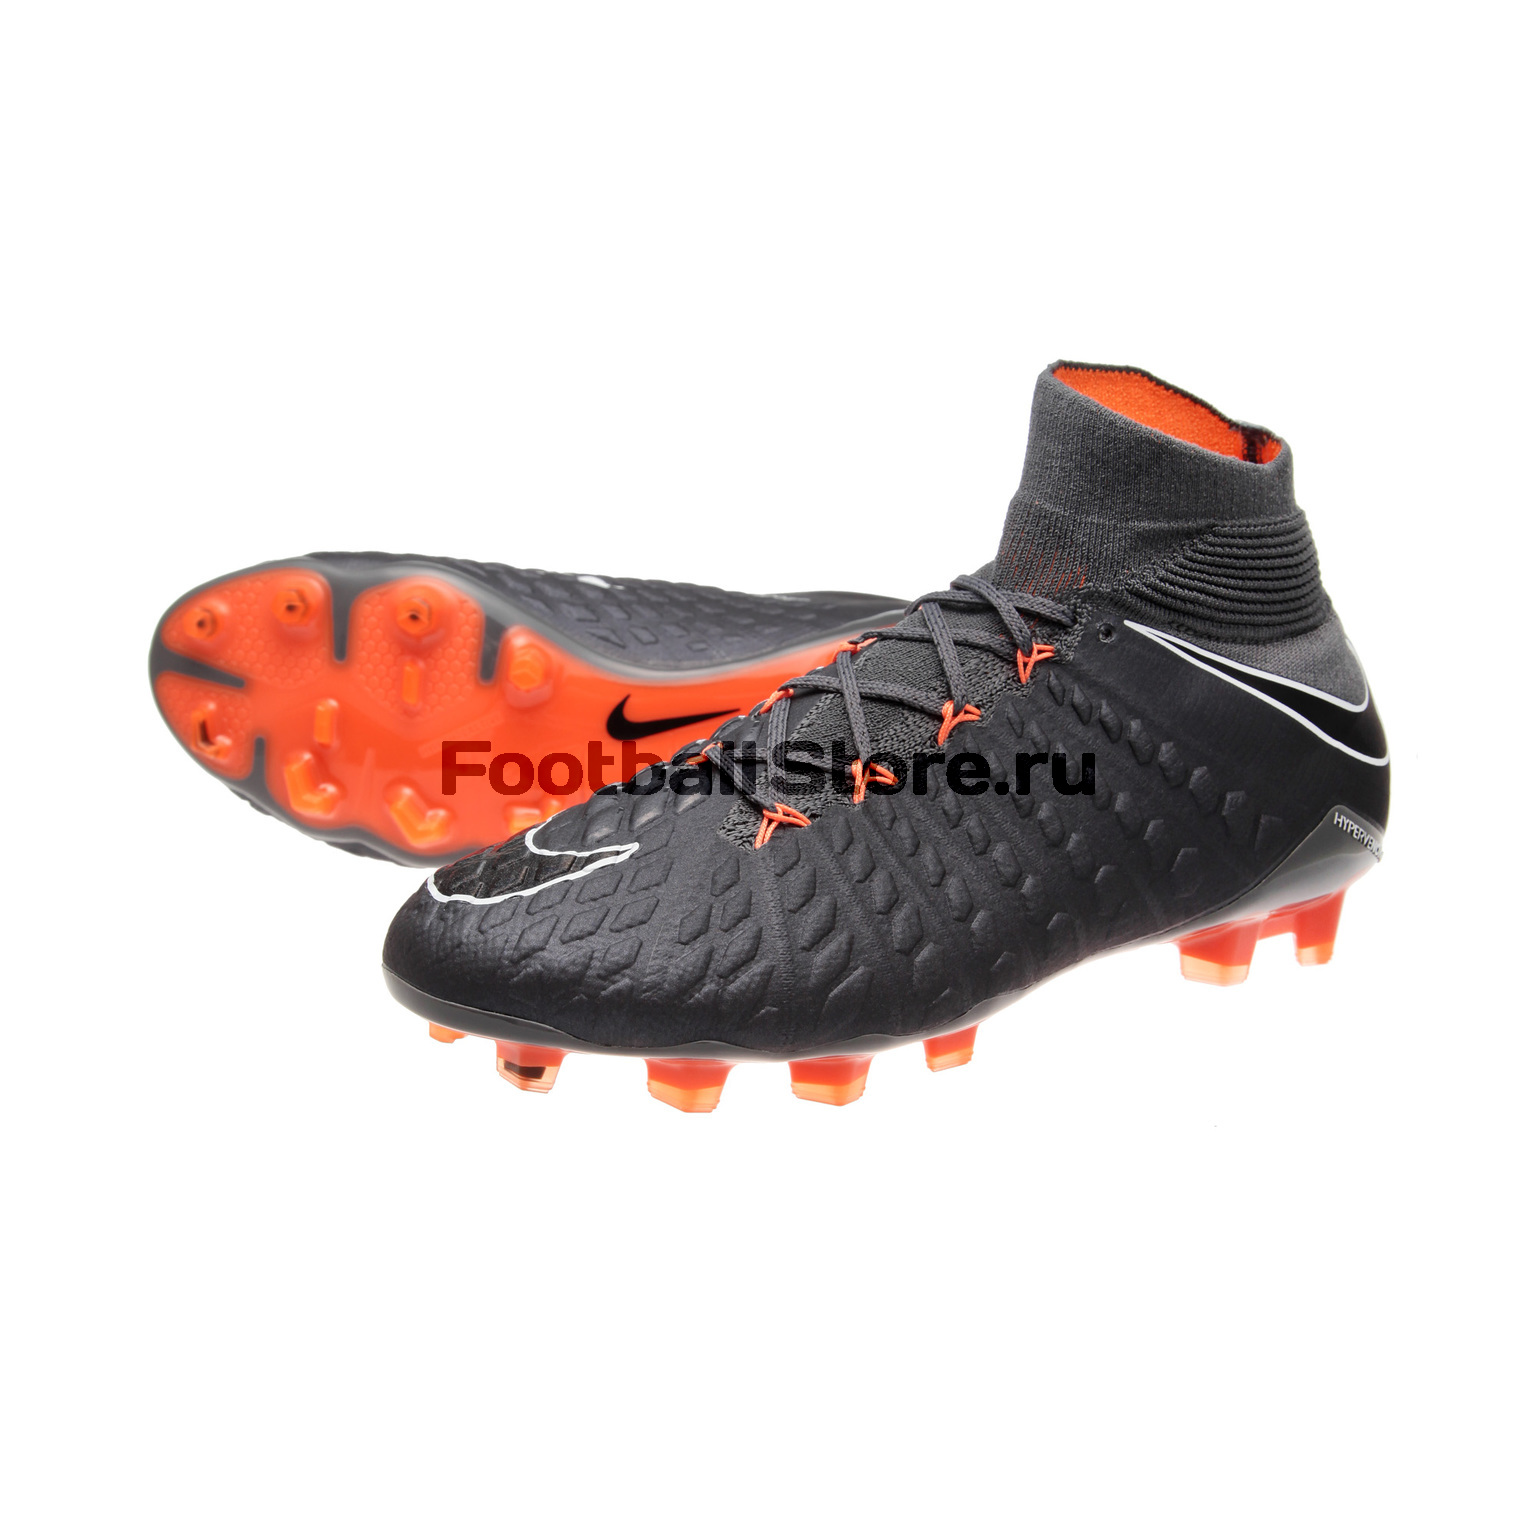 Бутсы Nike Phantom 3 Elite DF FG AH7270-081 бутсы nike phantom 3 academy ag pro ah8845 081